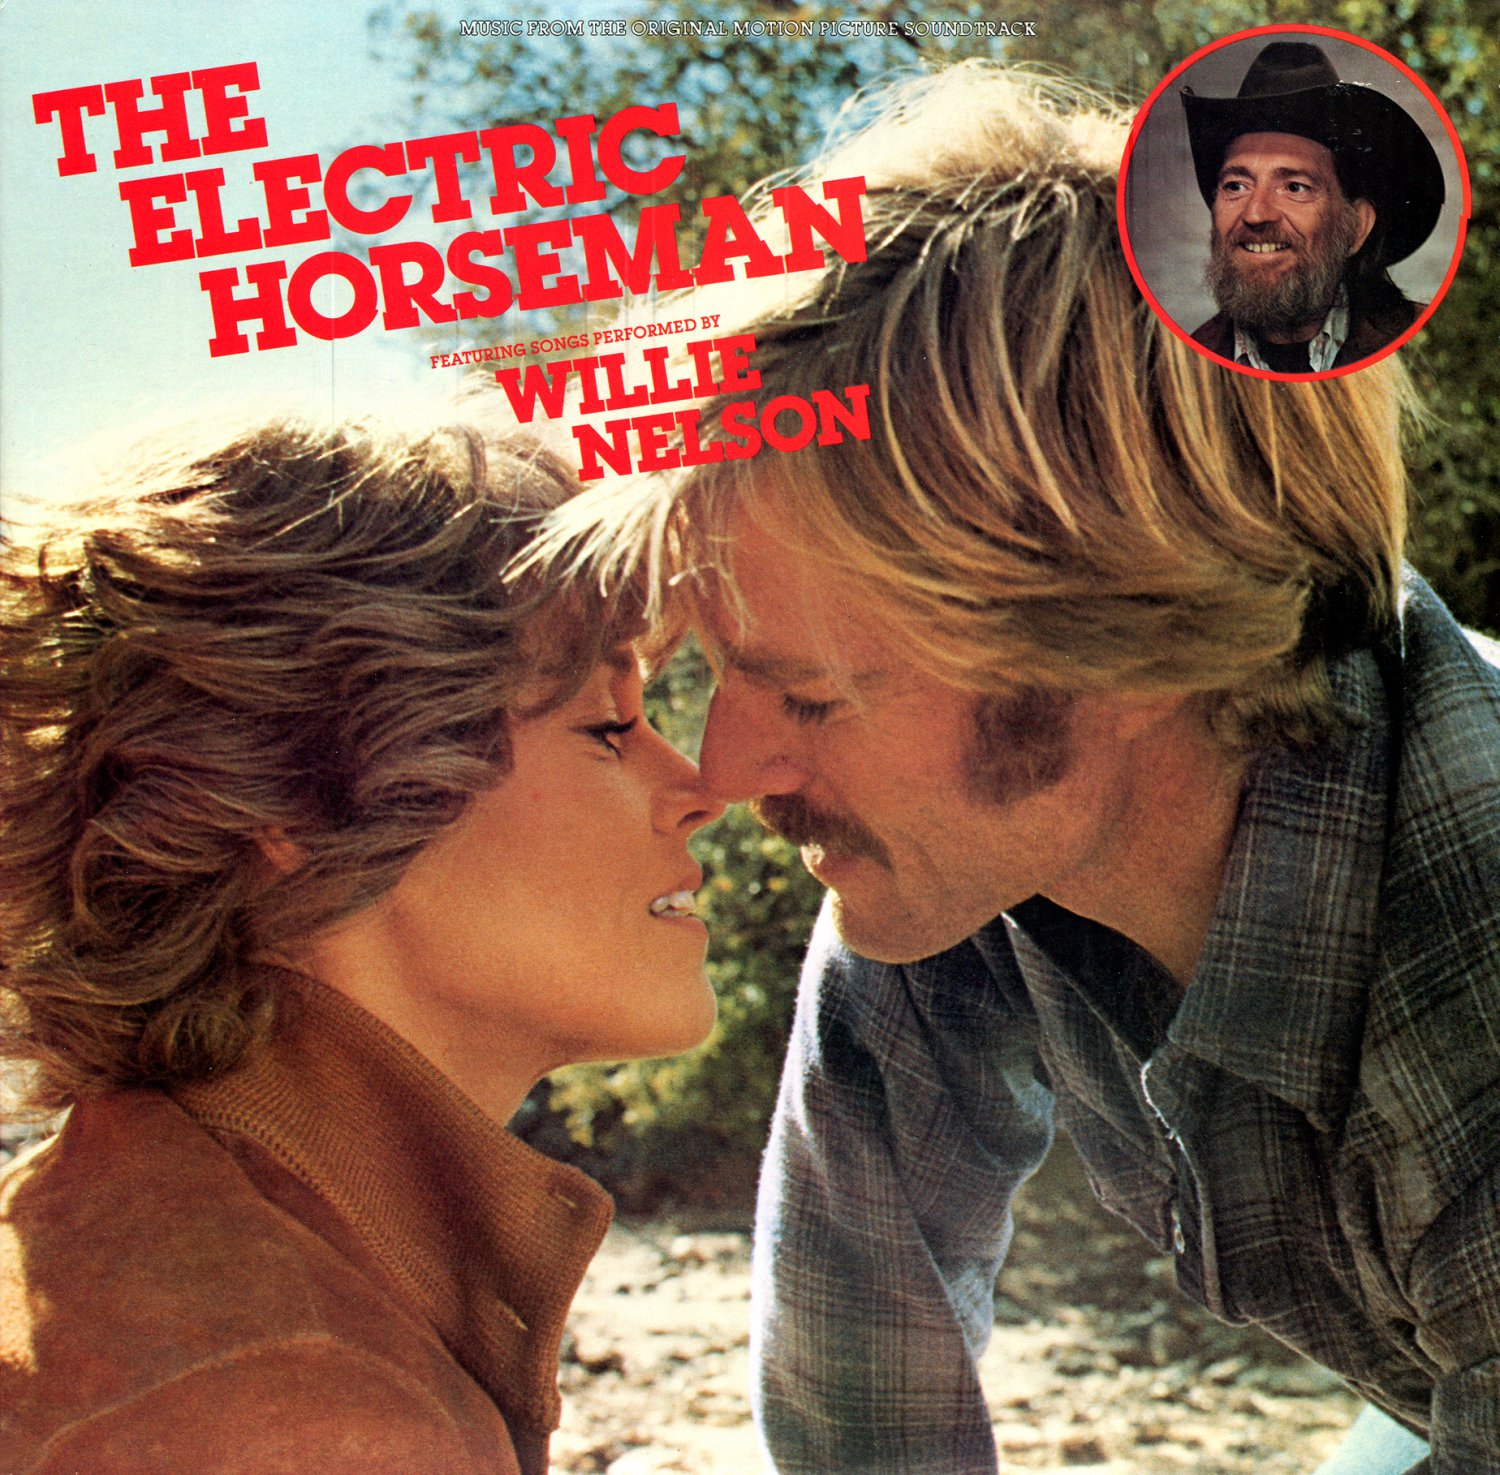 The Electric Horseman - Original Soundtrack, Dave Grusin & Willie Nelson OST LP/CD